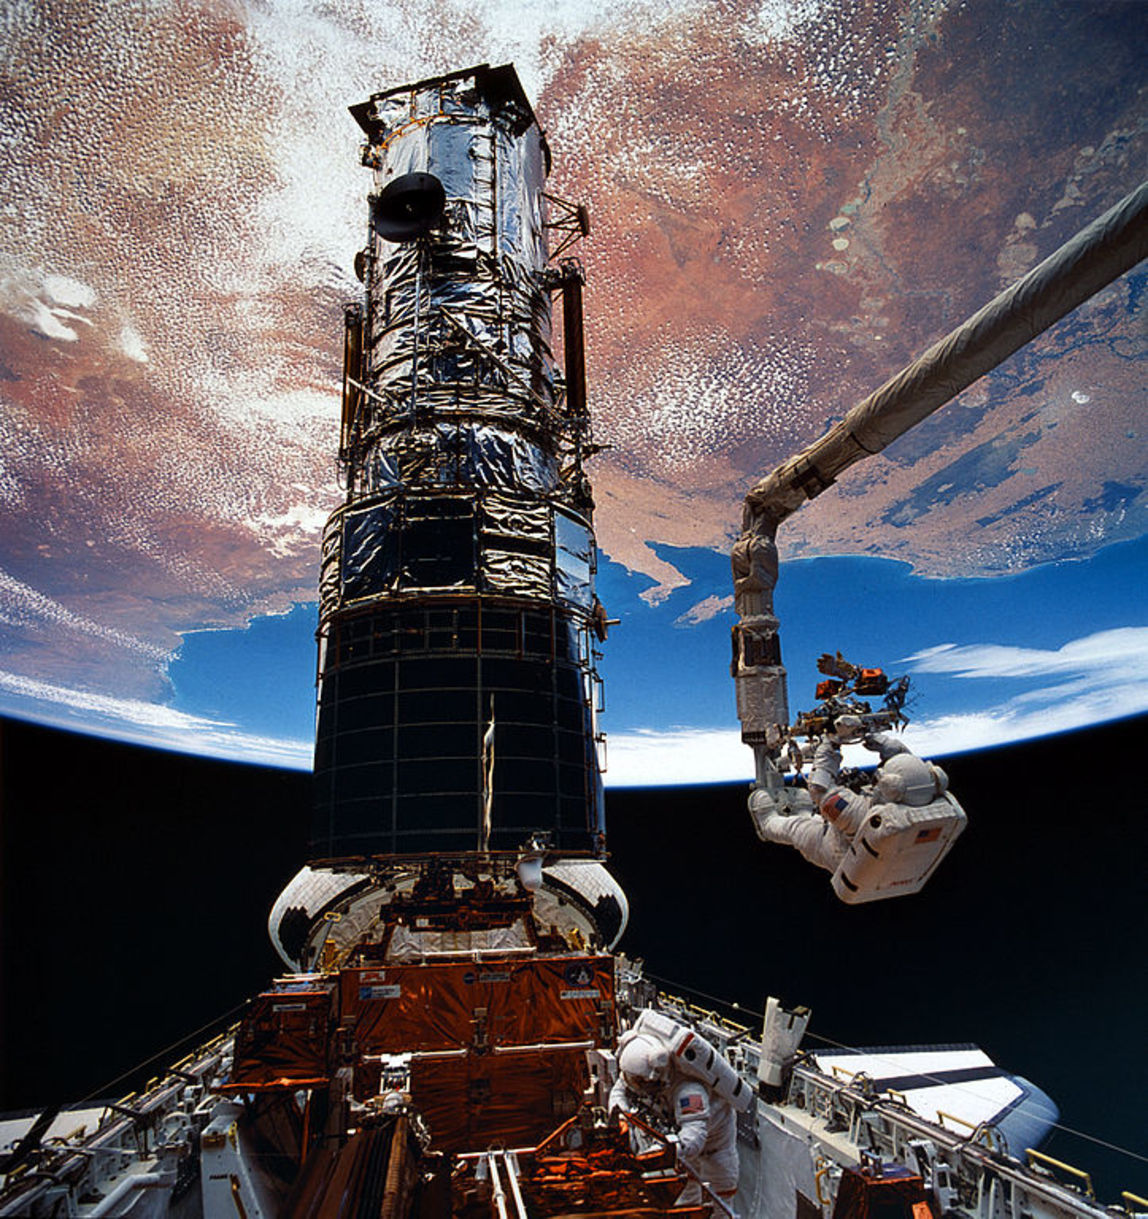 On April 24, 1990, the Hubble Space telescope was launched into low Earth orbit to reveal the